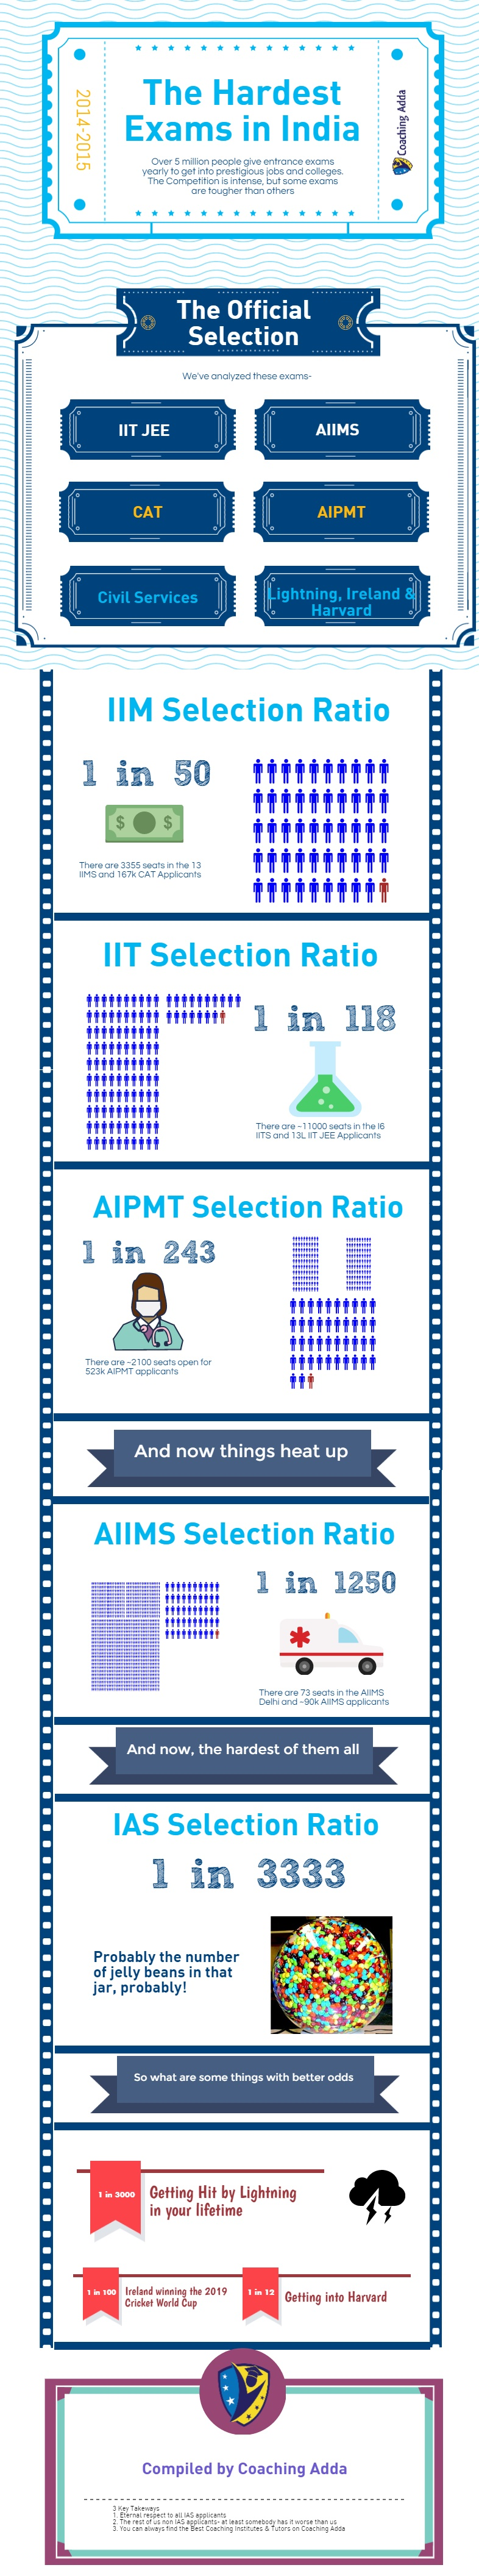 IIT, IIM, AIIMS and UPSC Admission Ratio